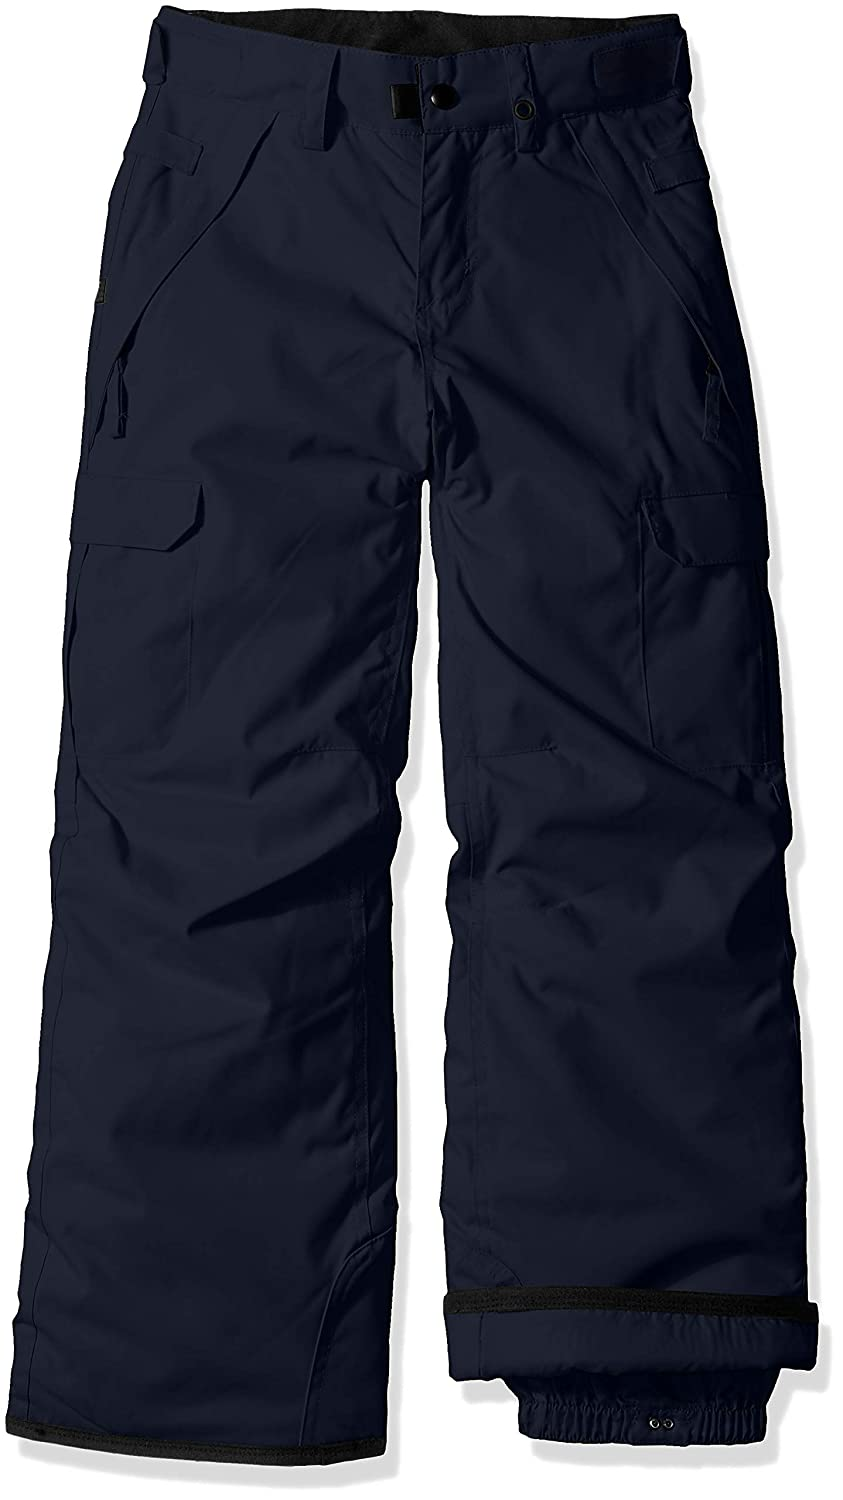 Image of 686 Boys' Infinity Cargo Insulated Waterproof Ski/Snowboard Pants Pants